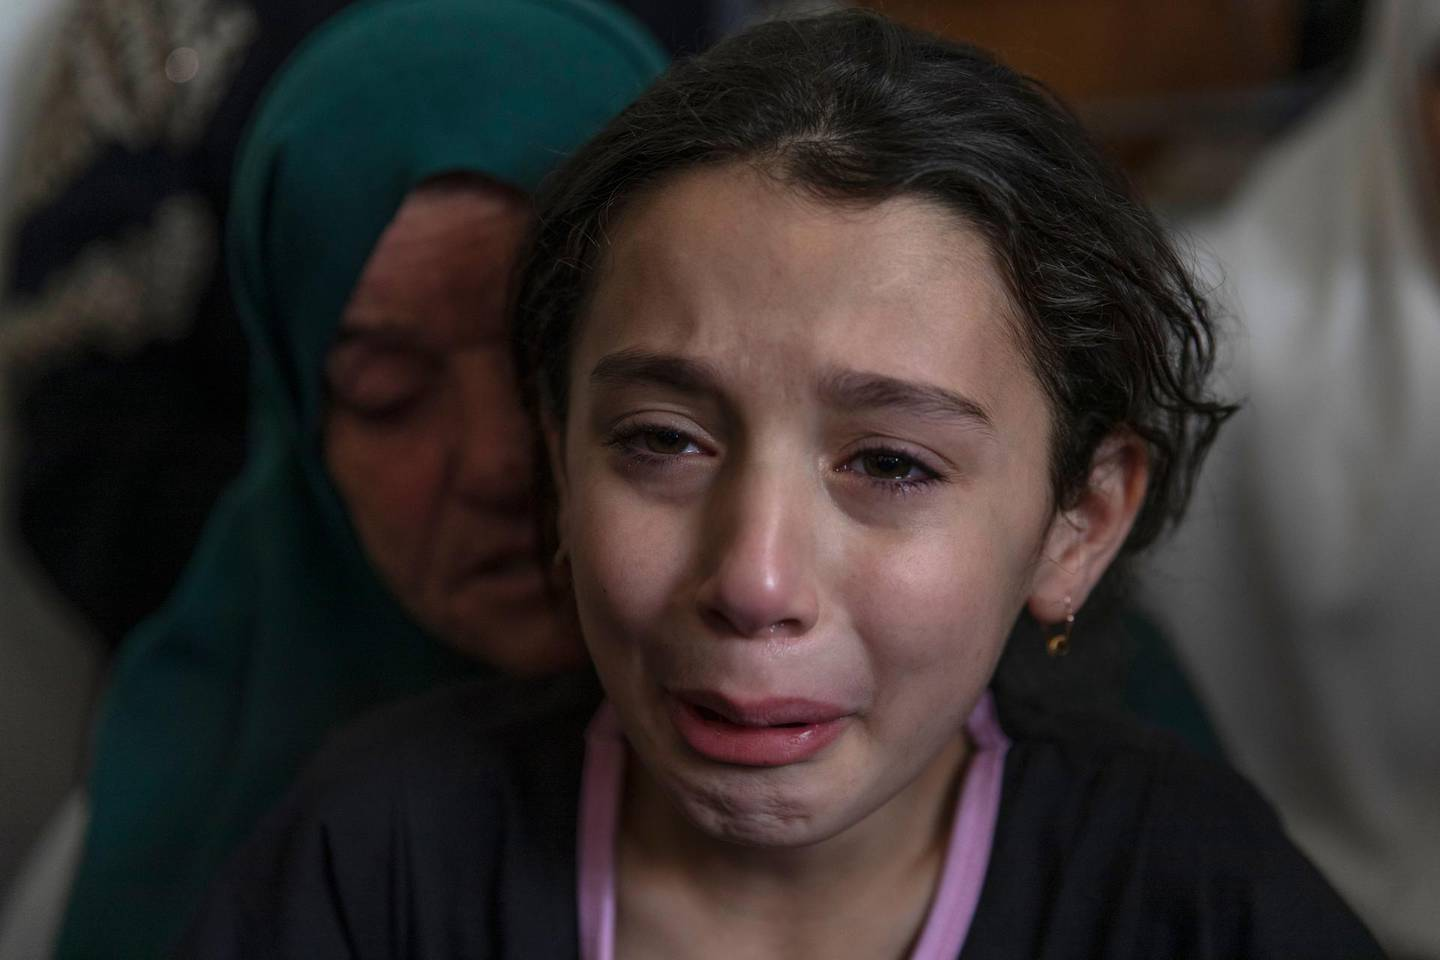 Palestinian Batoul Shamsa, 10, cries during the funeral of her brother Ahmad Shamsa, 15, in the West Bank village of Beta, near Nablus, Thursday, June. 17, 2021. The Palestinian health ministry said Thursday that Shamsa who was shot by Israeli troops in the West Bank a day earlier died of his injuries. (AP Photo/Nasser Nasser)